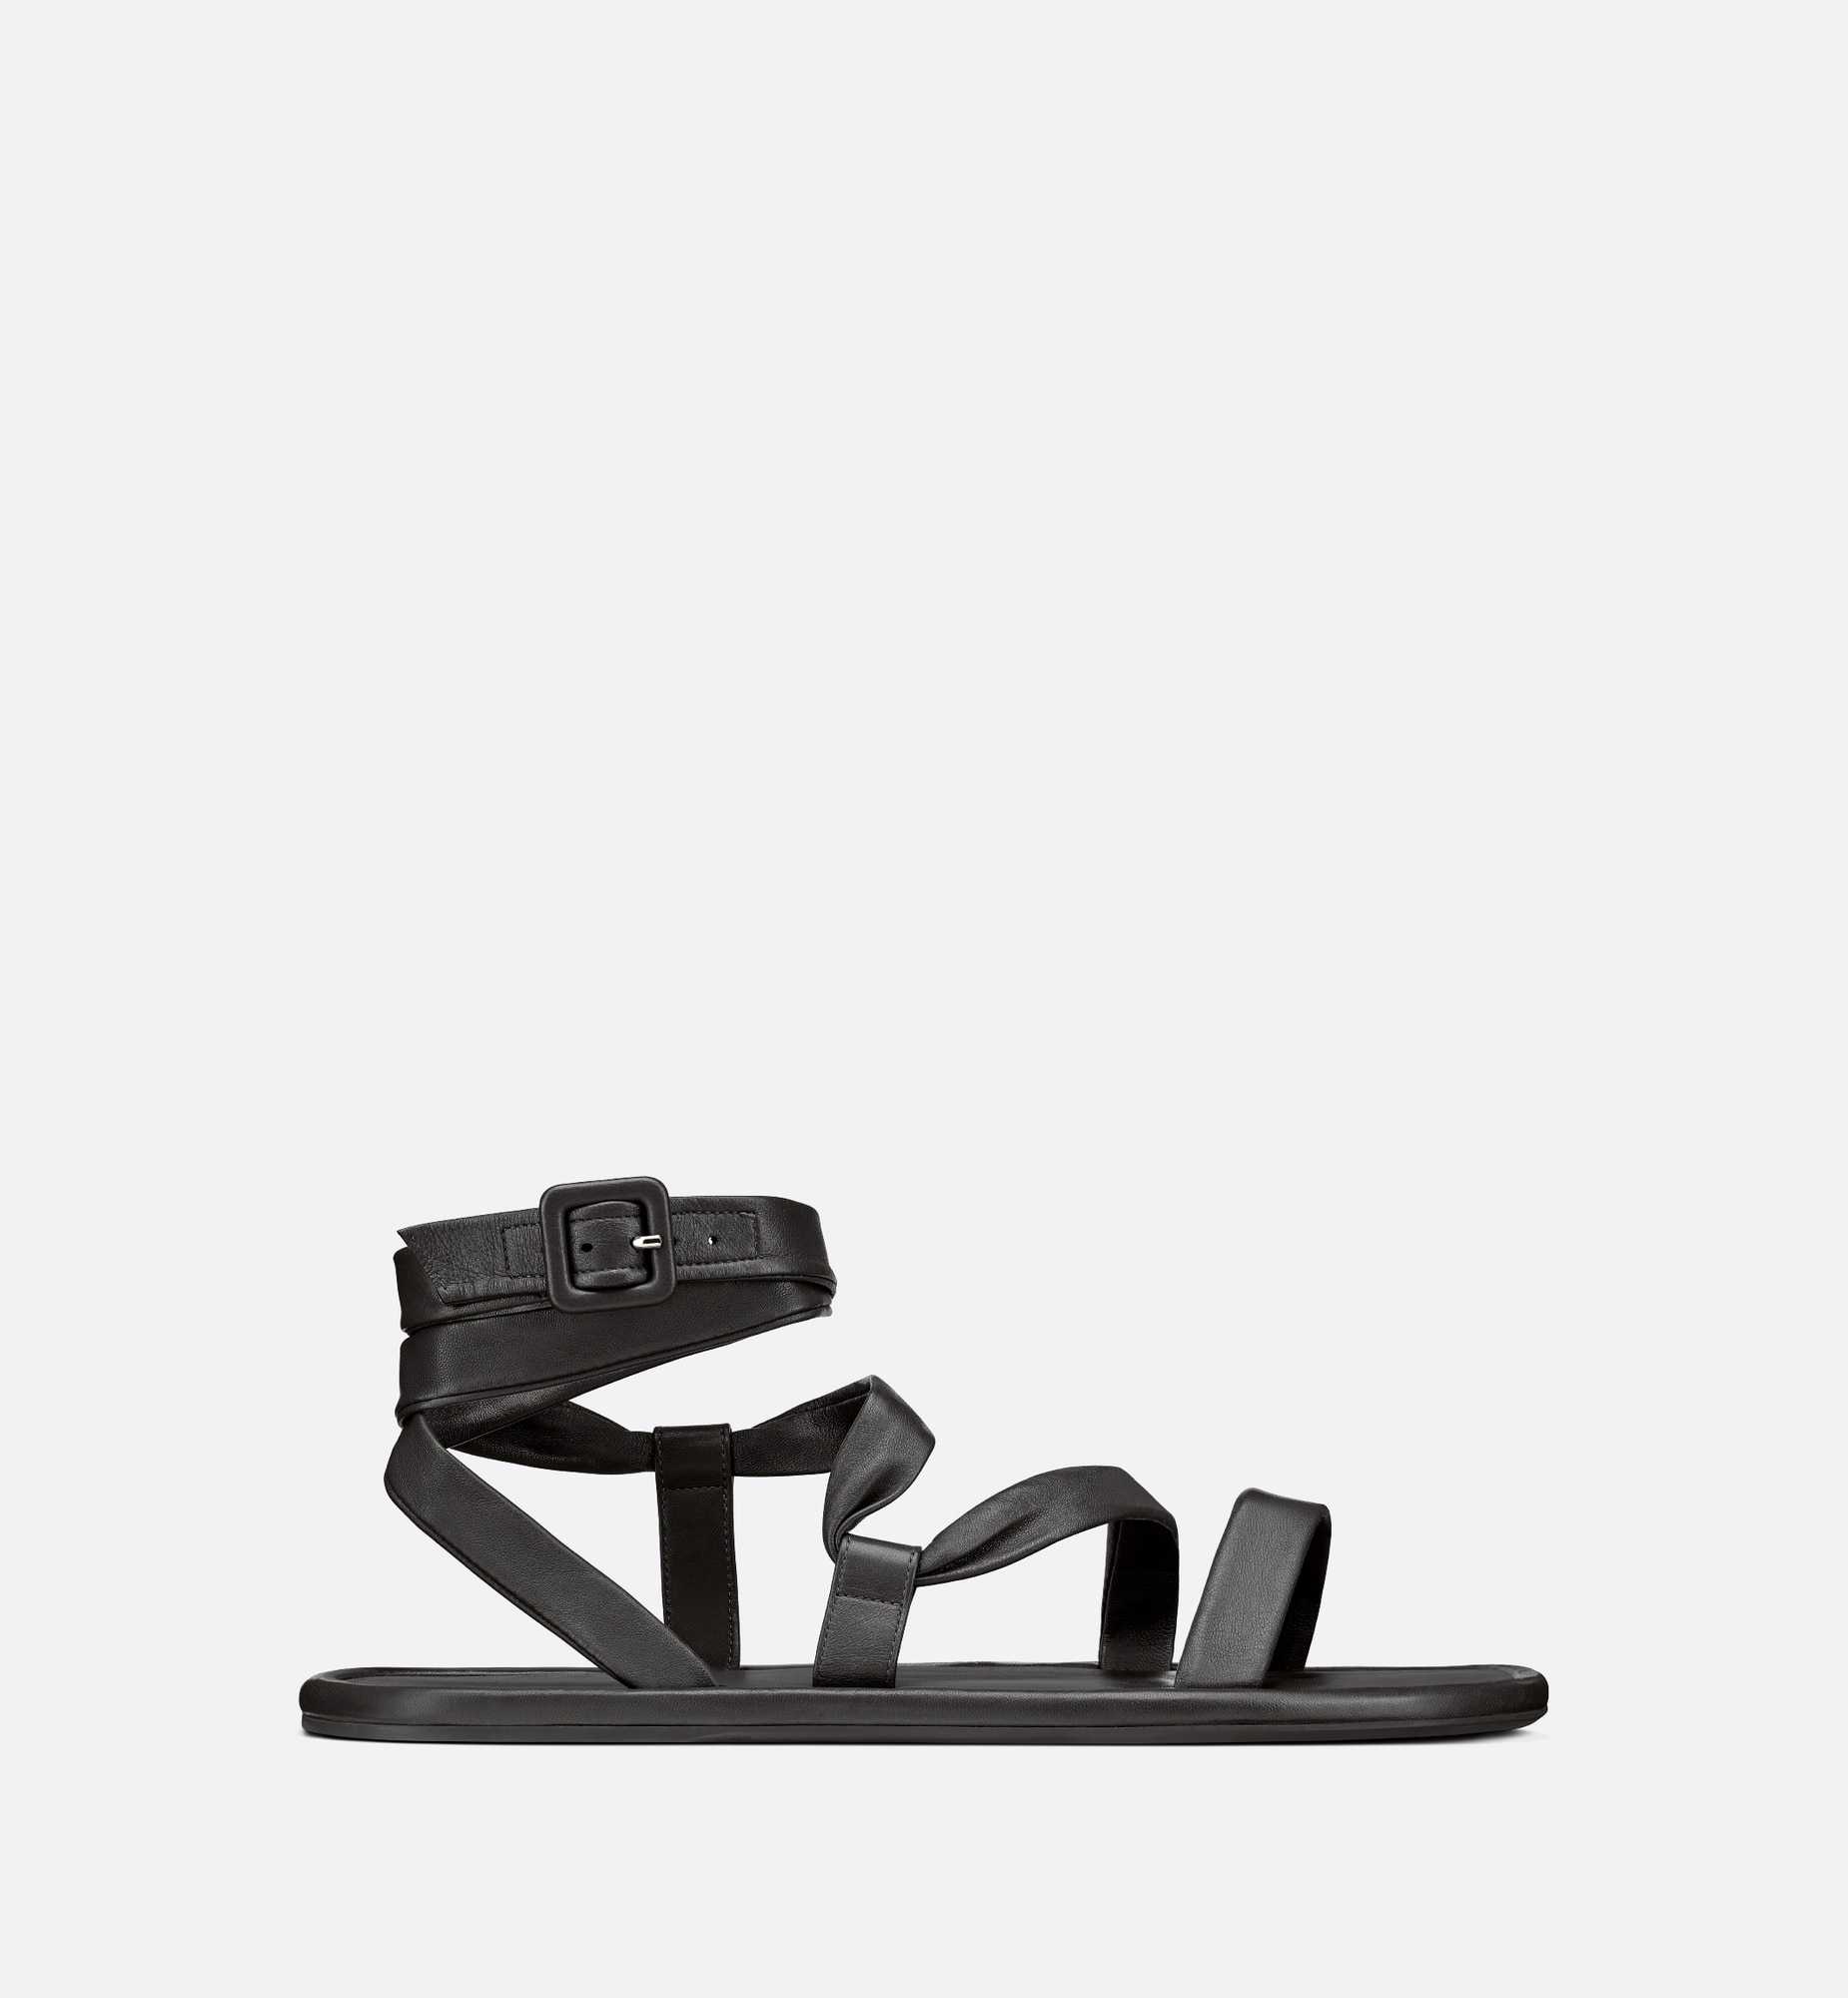 Dior Abbesse Sandal Profile view